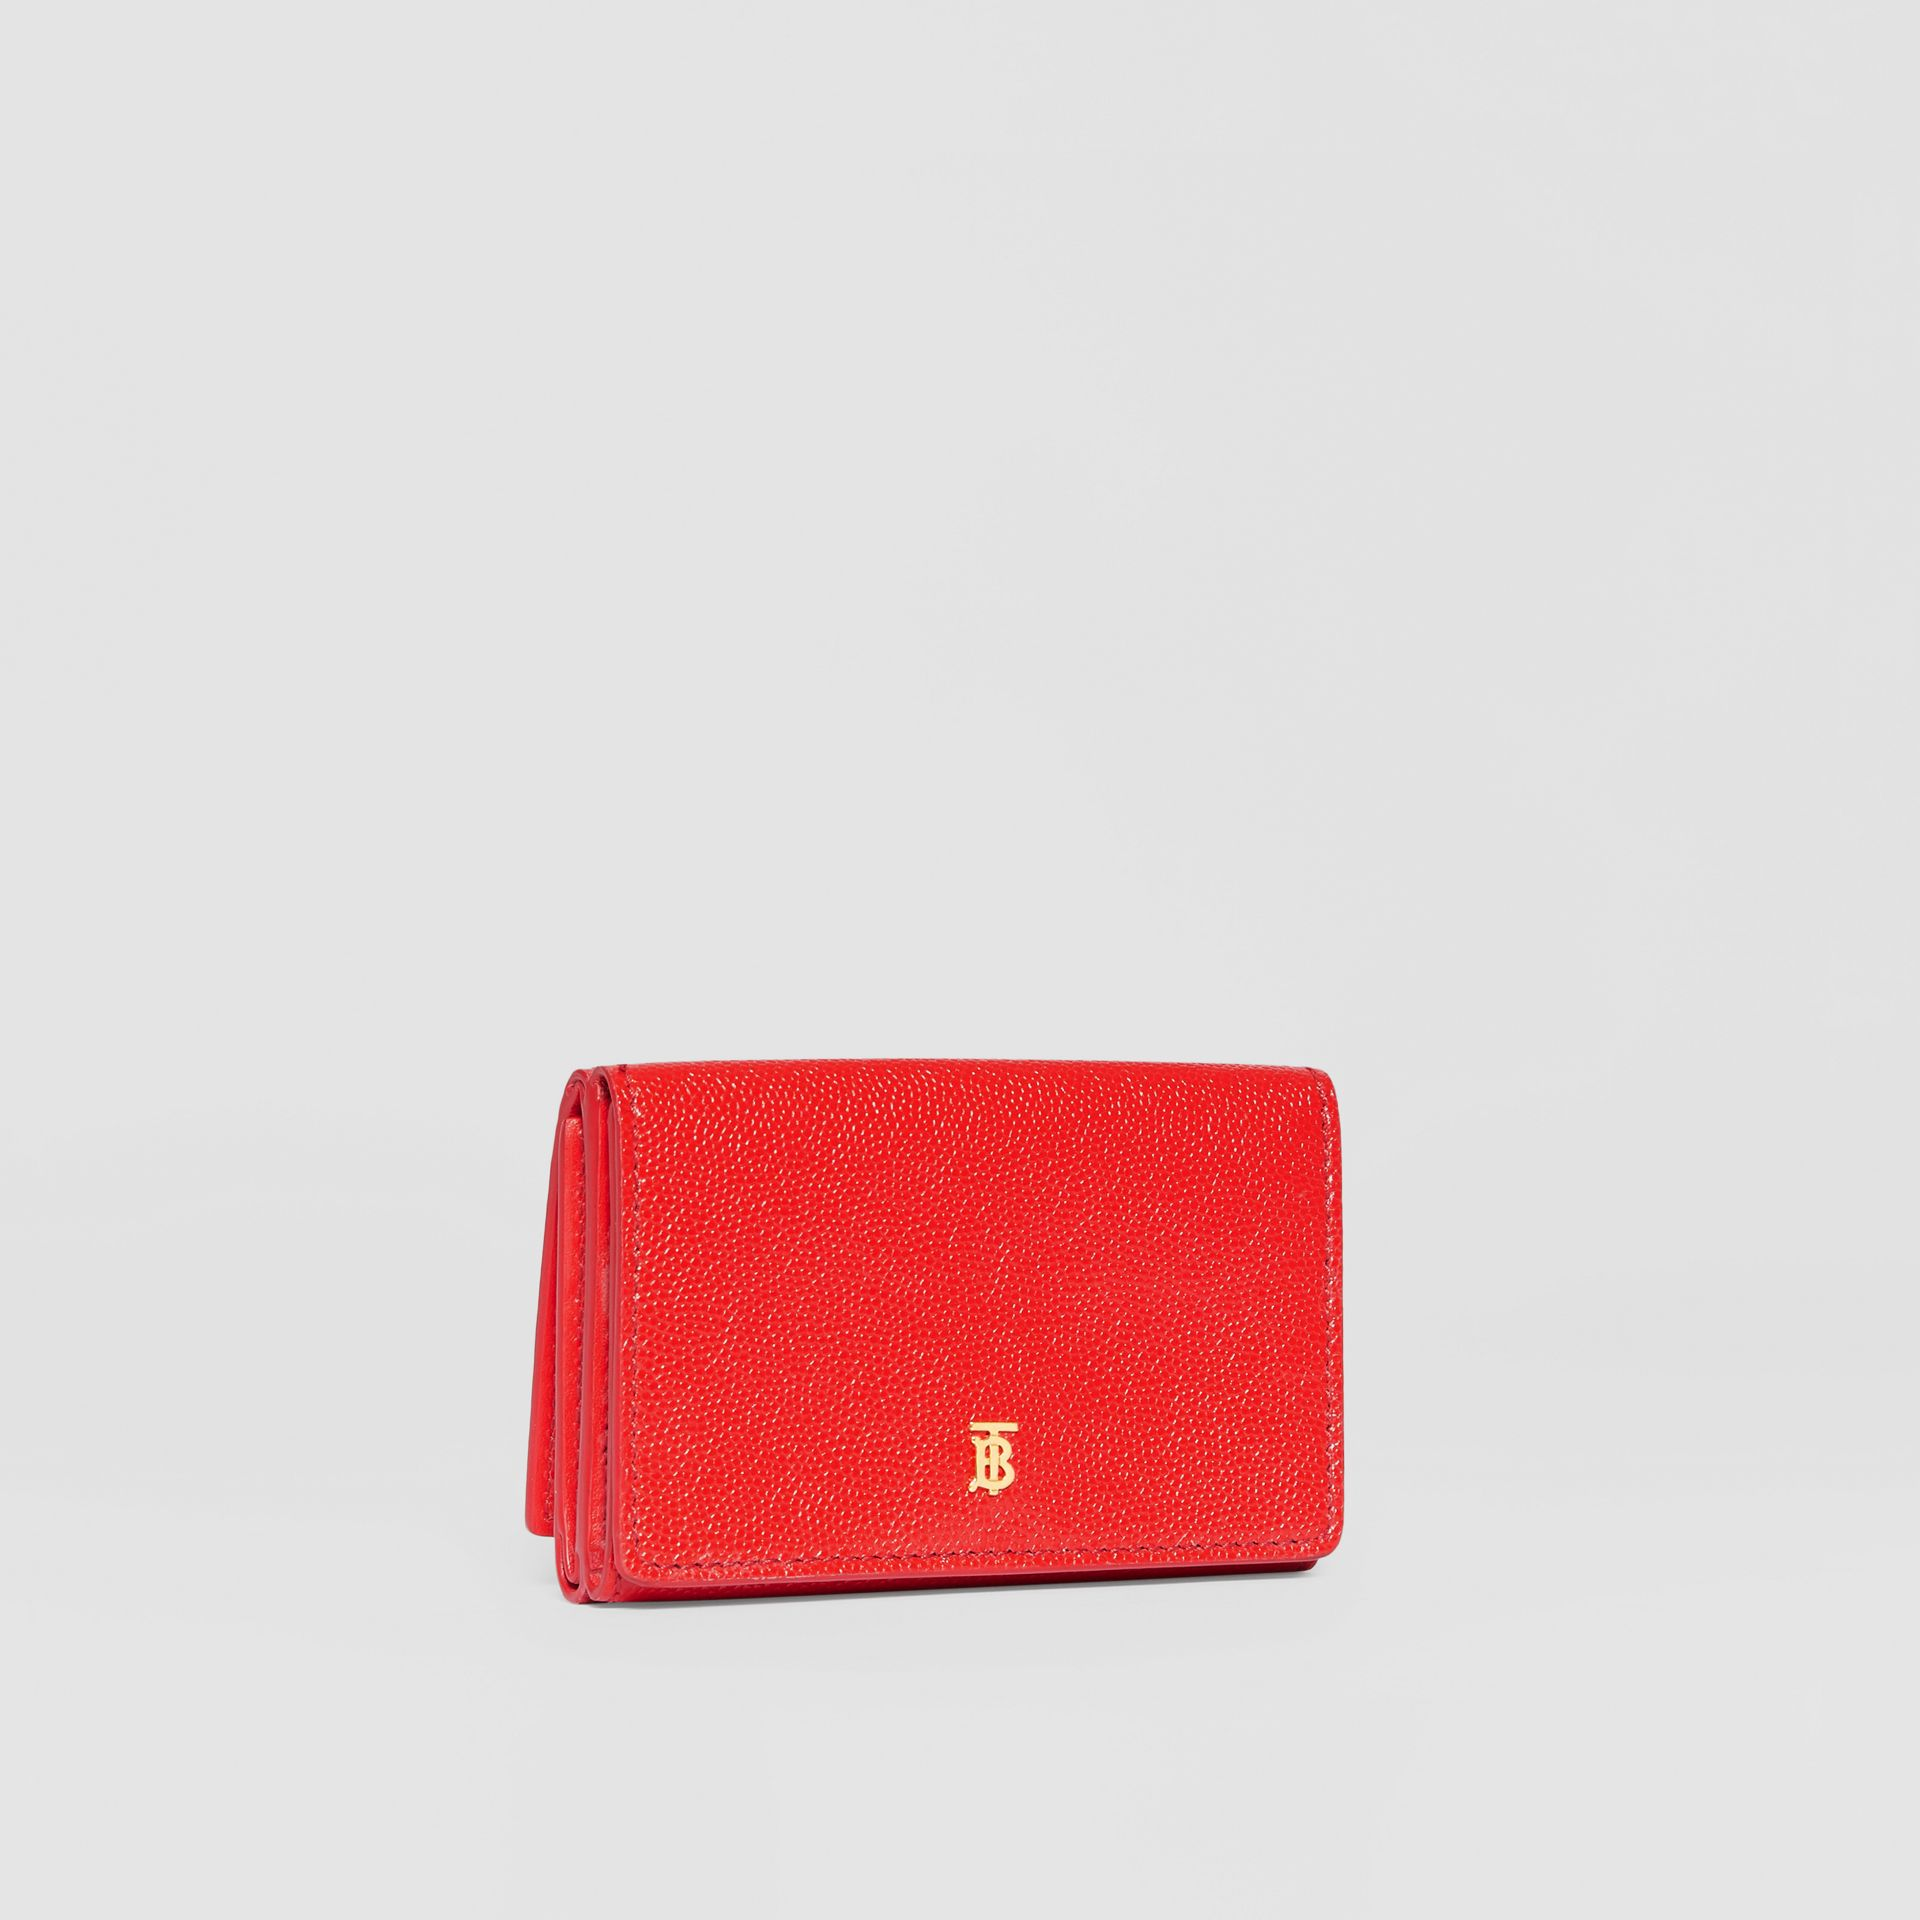 Small Grainy Leather Folding Wallet in Bright Red - Women | Burberry Singapore - gallery image 3